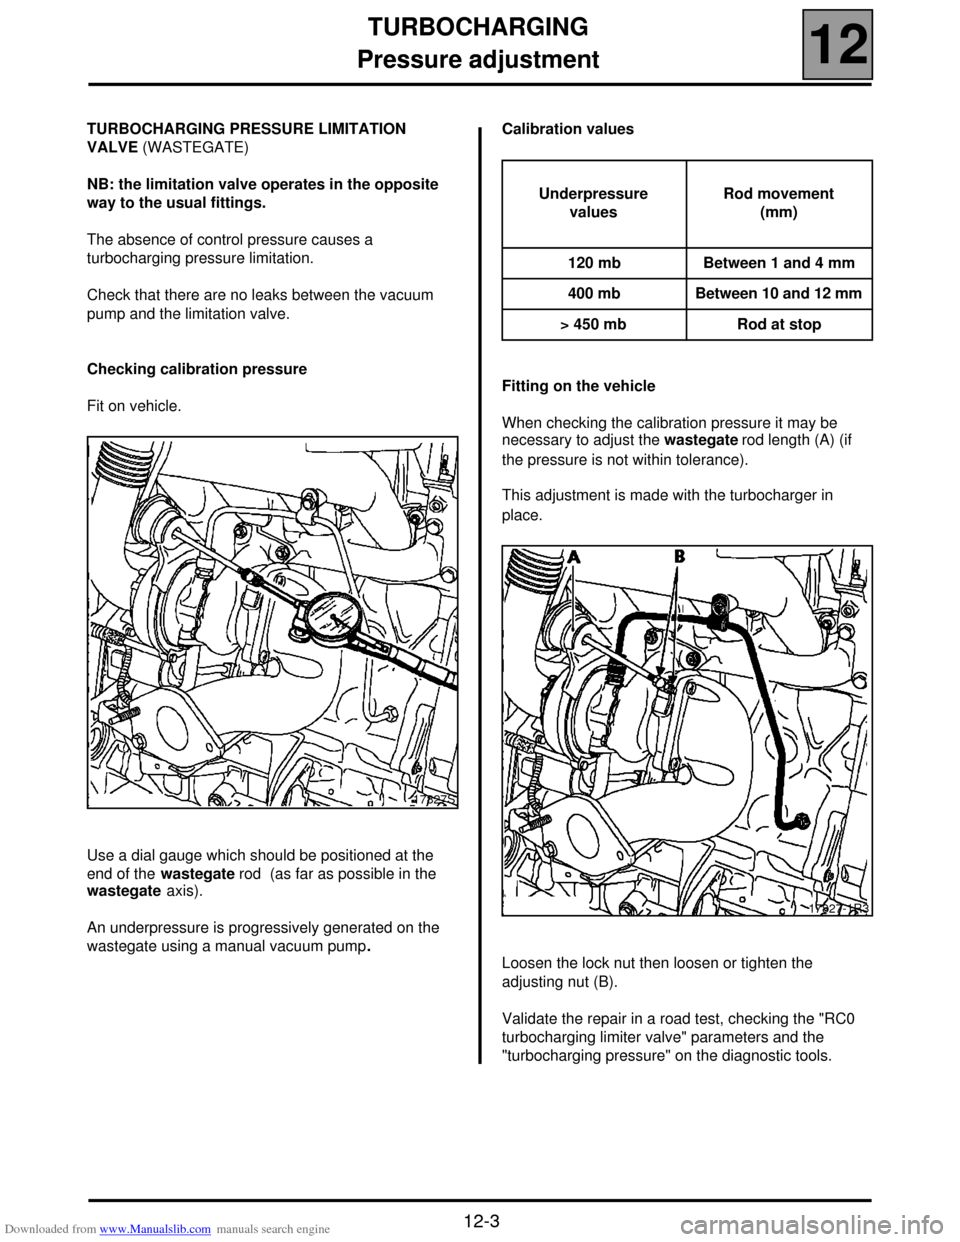 ABS RENAULT SCENIC 2000 J64 / 1.G Technical Note 3426A